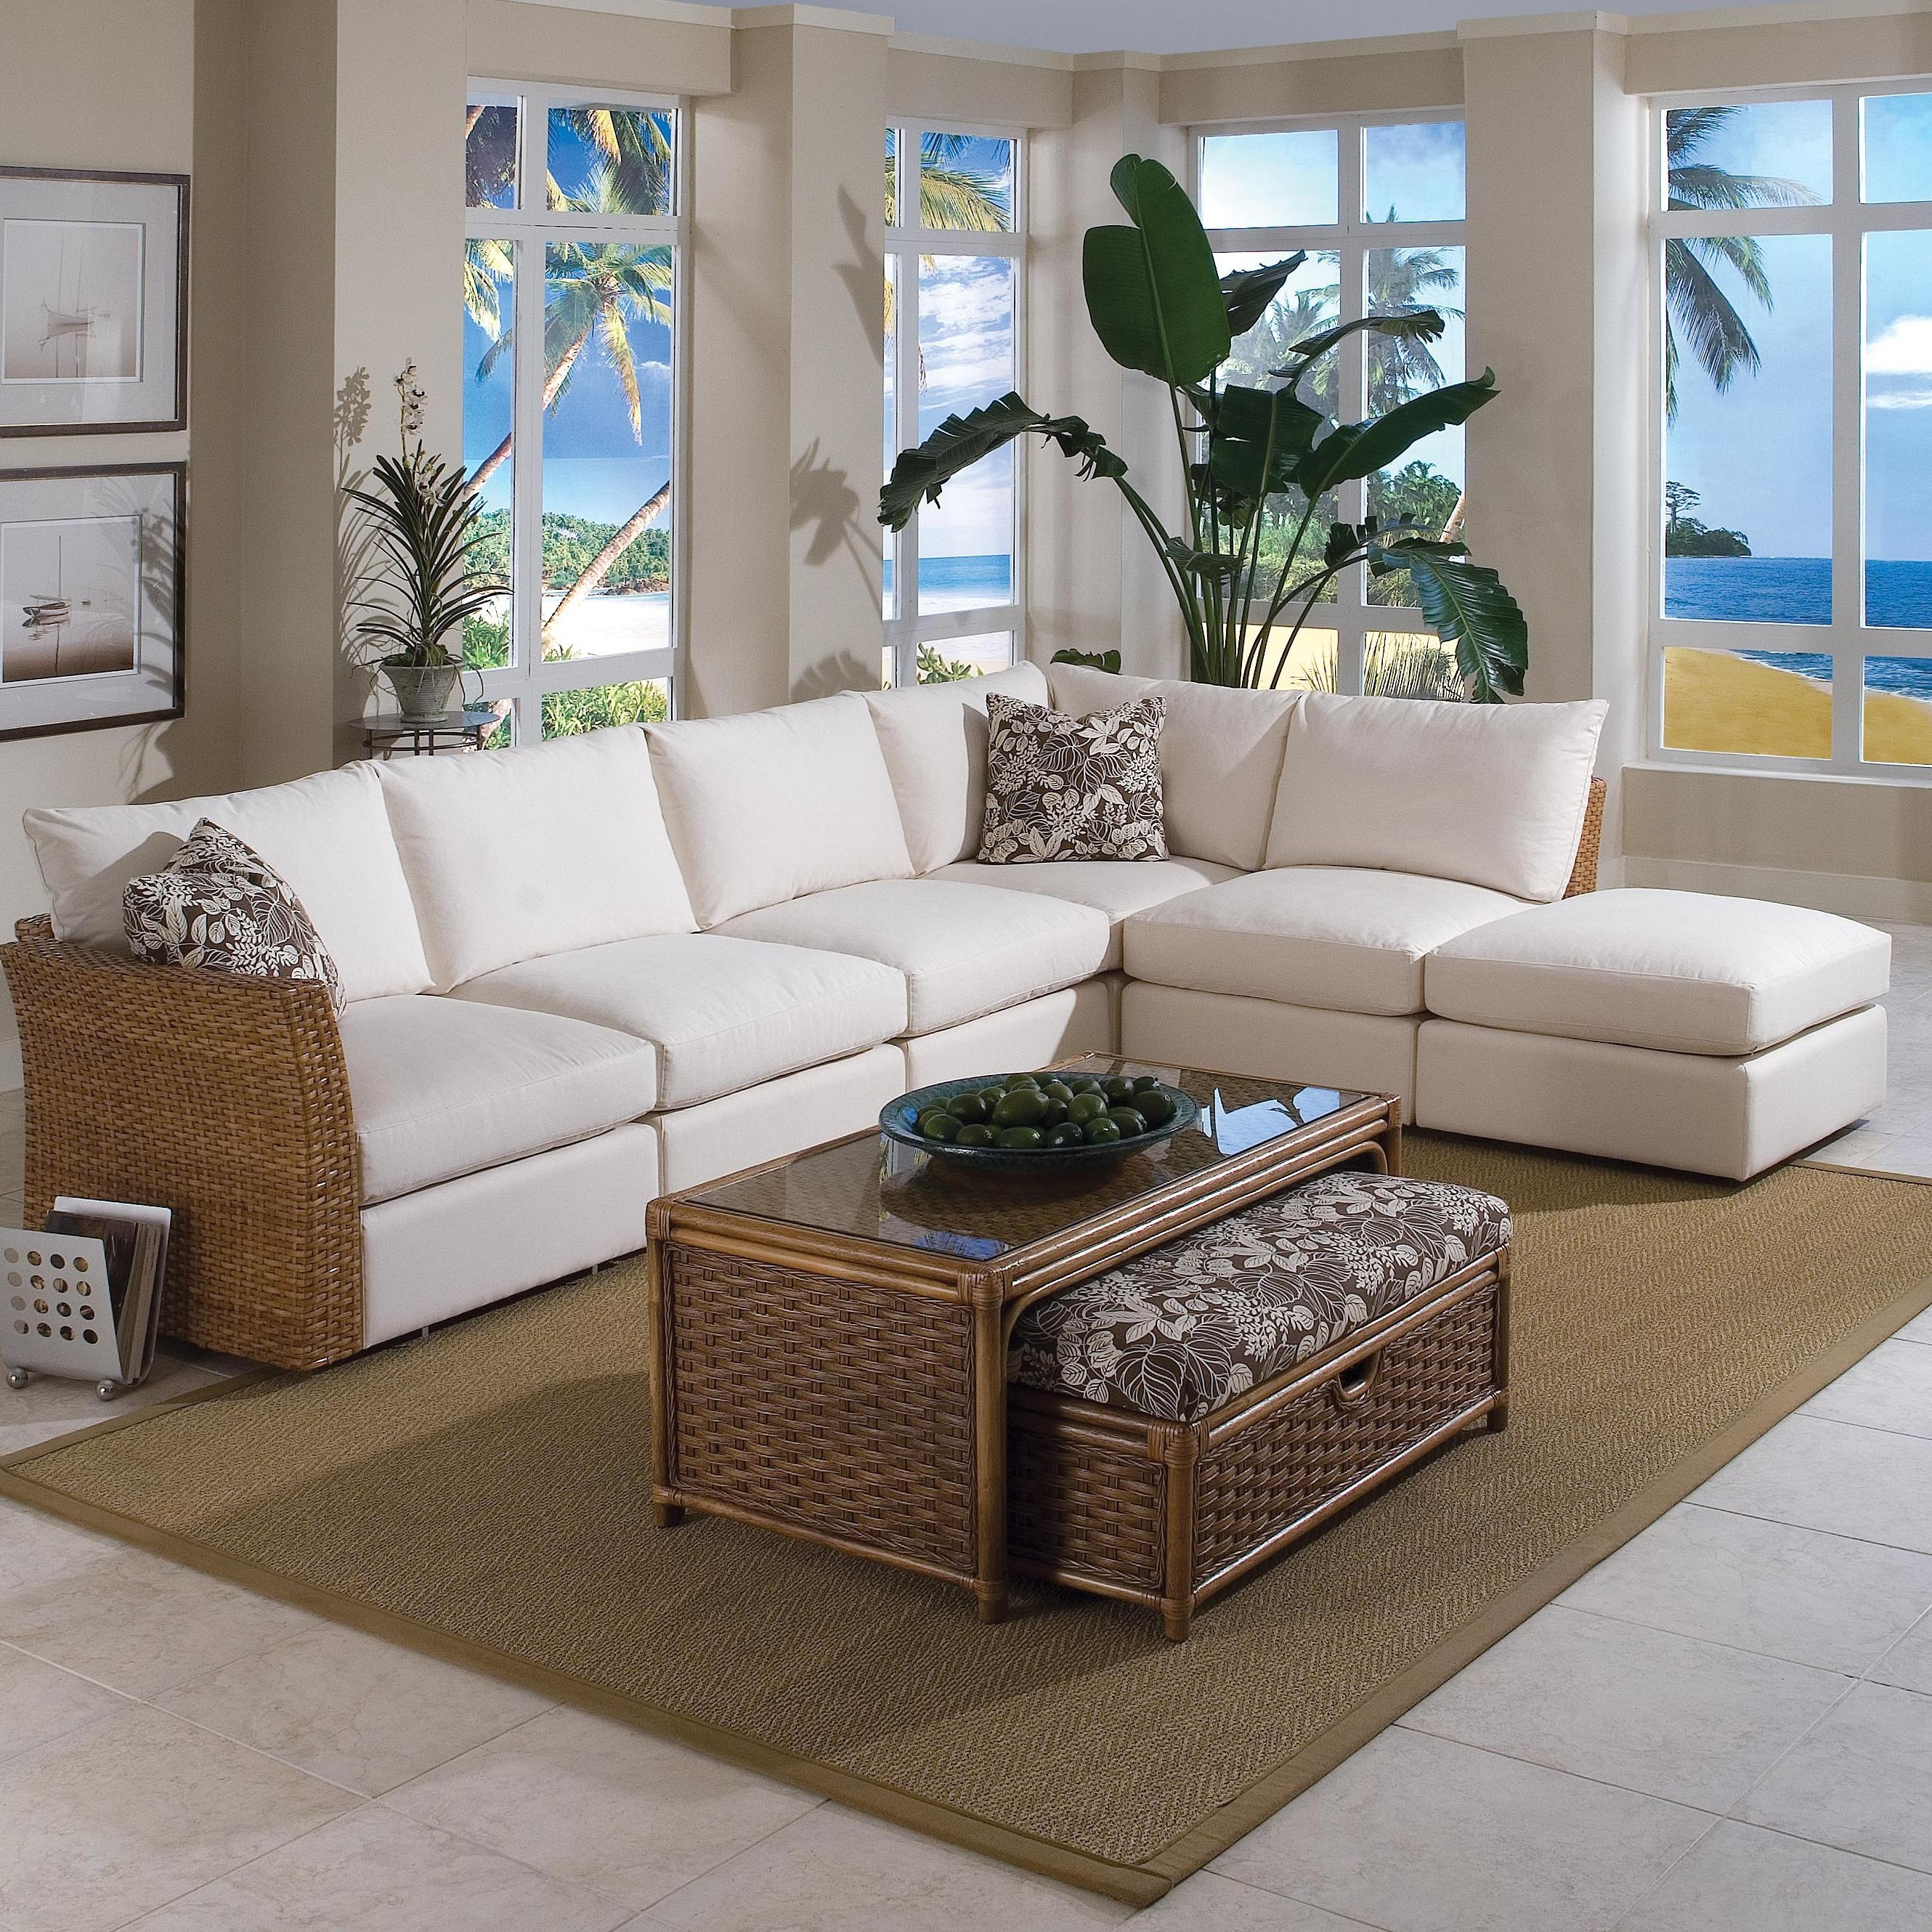 Newest Johnson City Tn Sectional Sofas For Braxton Culler Grand Water Point Tropical Sectional Sofa With Two (View 3 of 15)